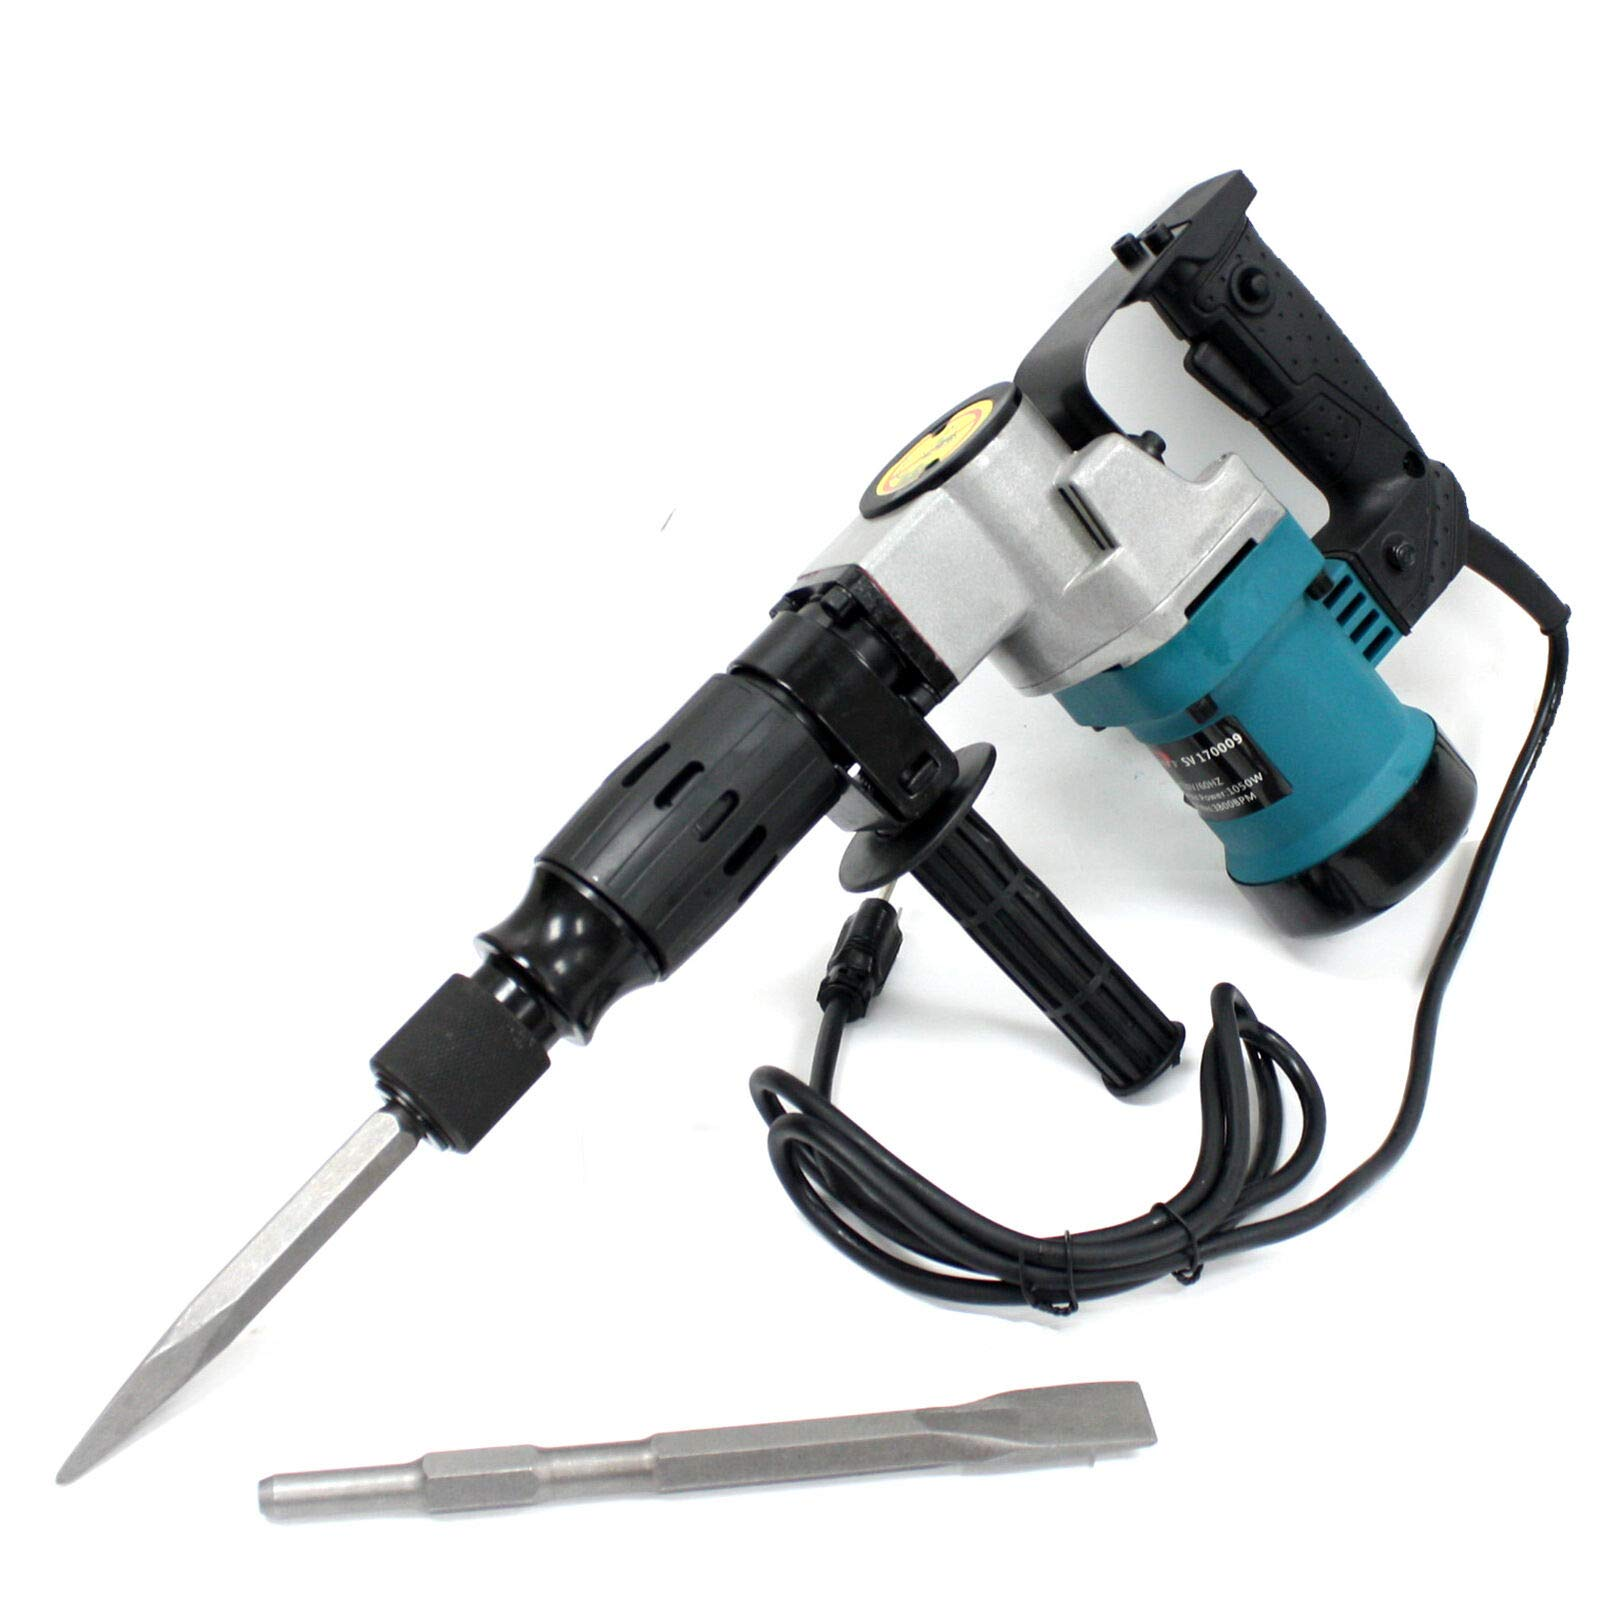 9TRADING 3000BPM 1-1/2'' Electric Demolition Jack Hammer Concrete Breaker With Chisels Bits